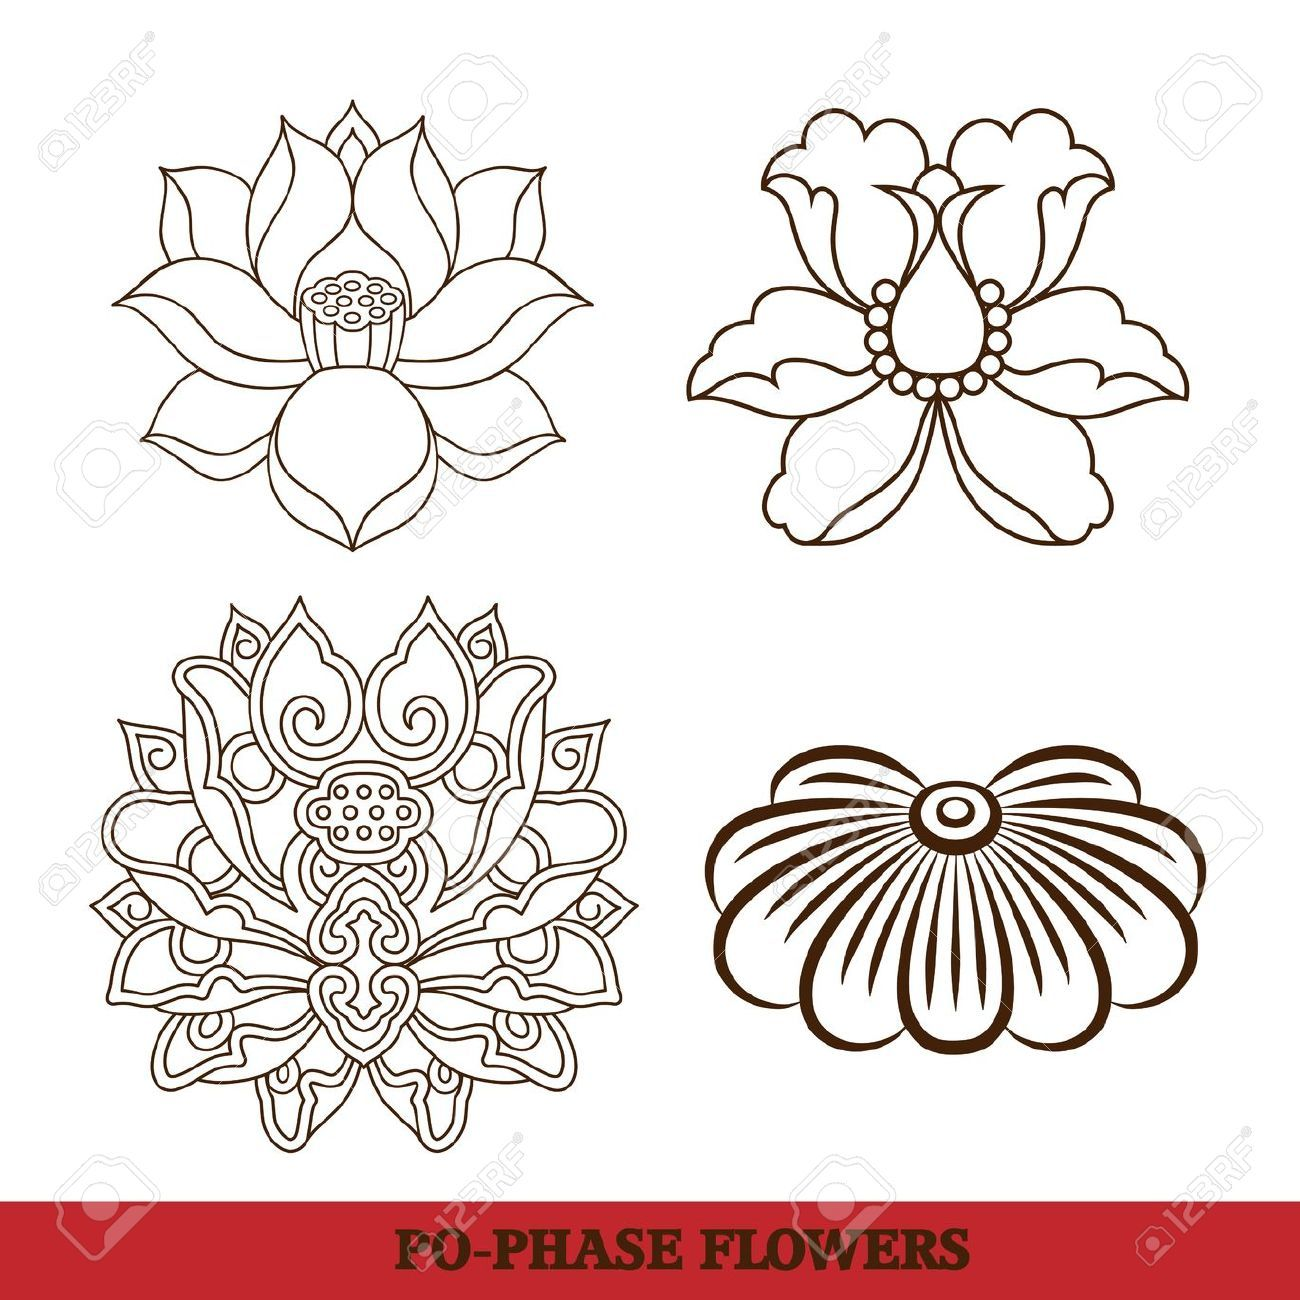 Lotus pattern google search the lotus flower pinterest lotus lotus pattern google search izmirmasajfo